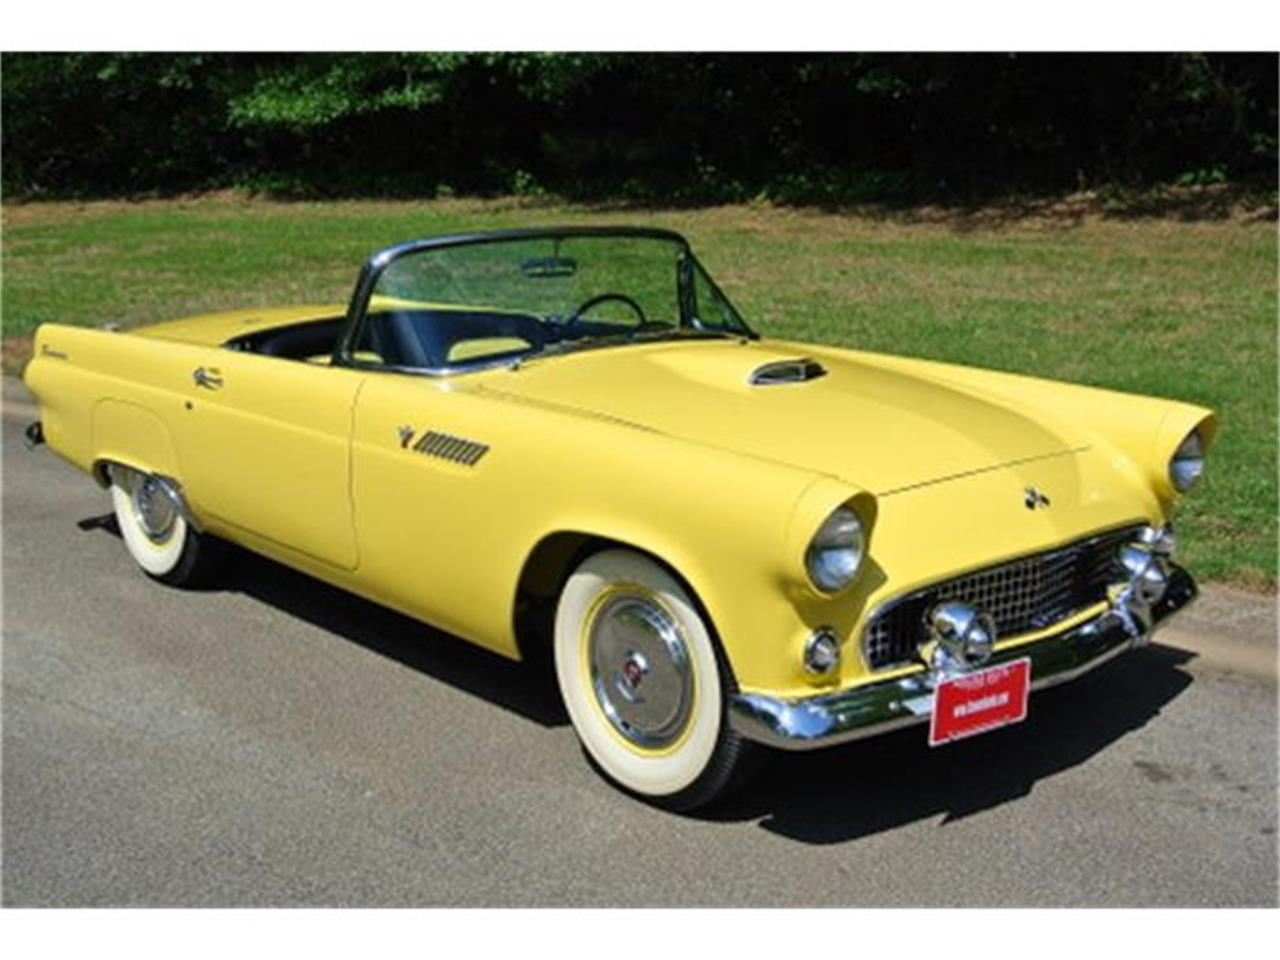 Large picture of 55 thunderbird i9vc